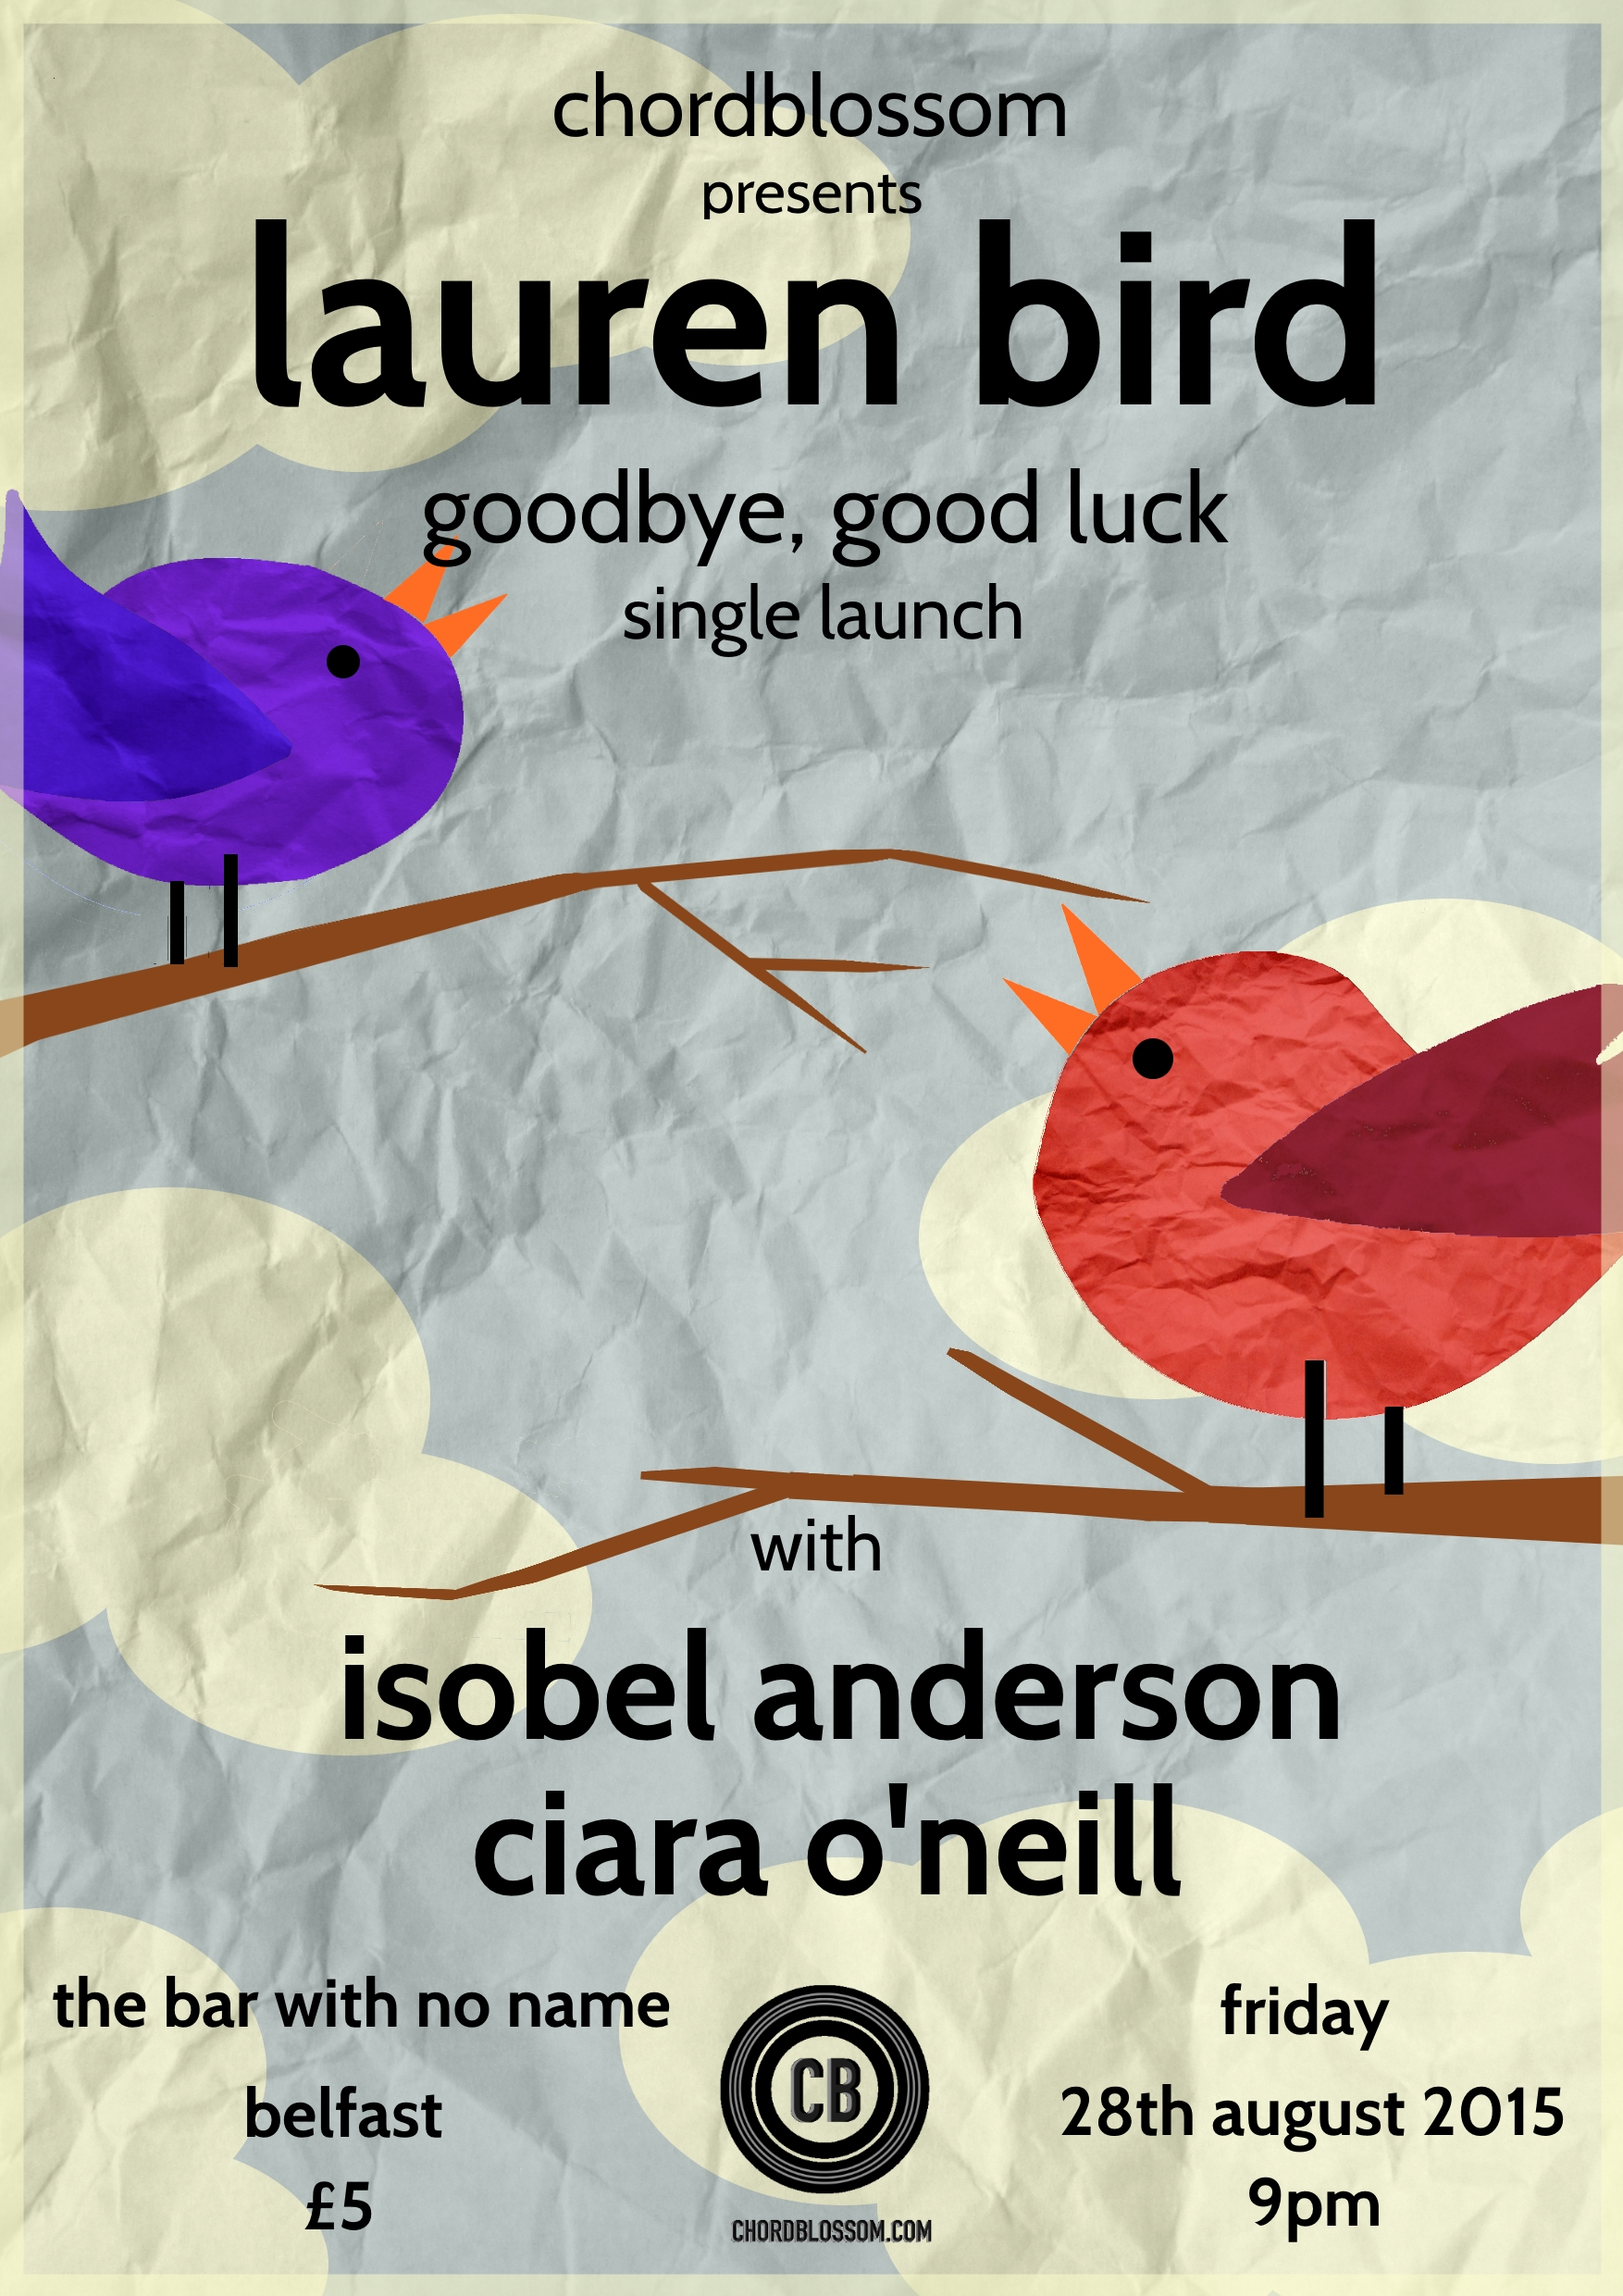 Chordblossom Presents: Lauren Bird 'Goodbye Goodluck Single Launch with Isobel Anderson & Ciara O'Neill